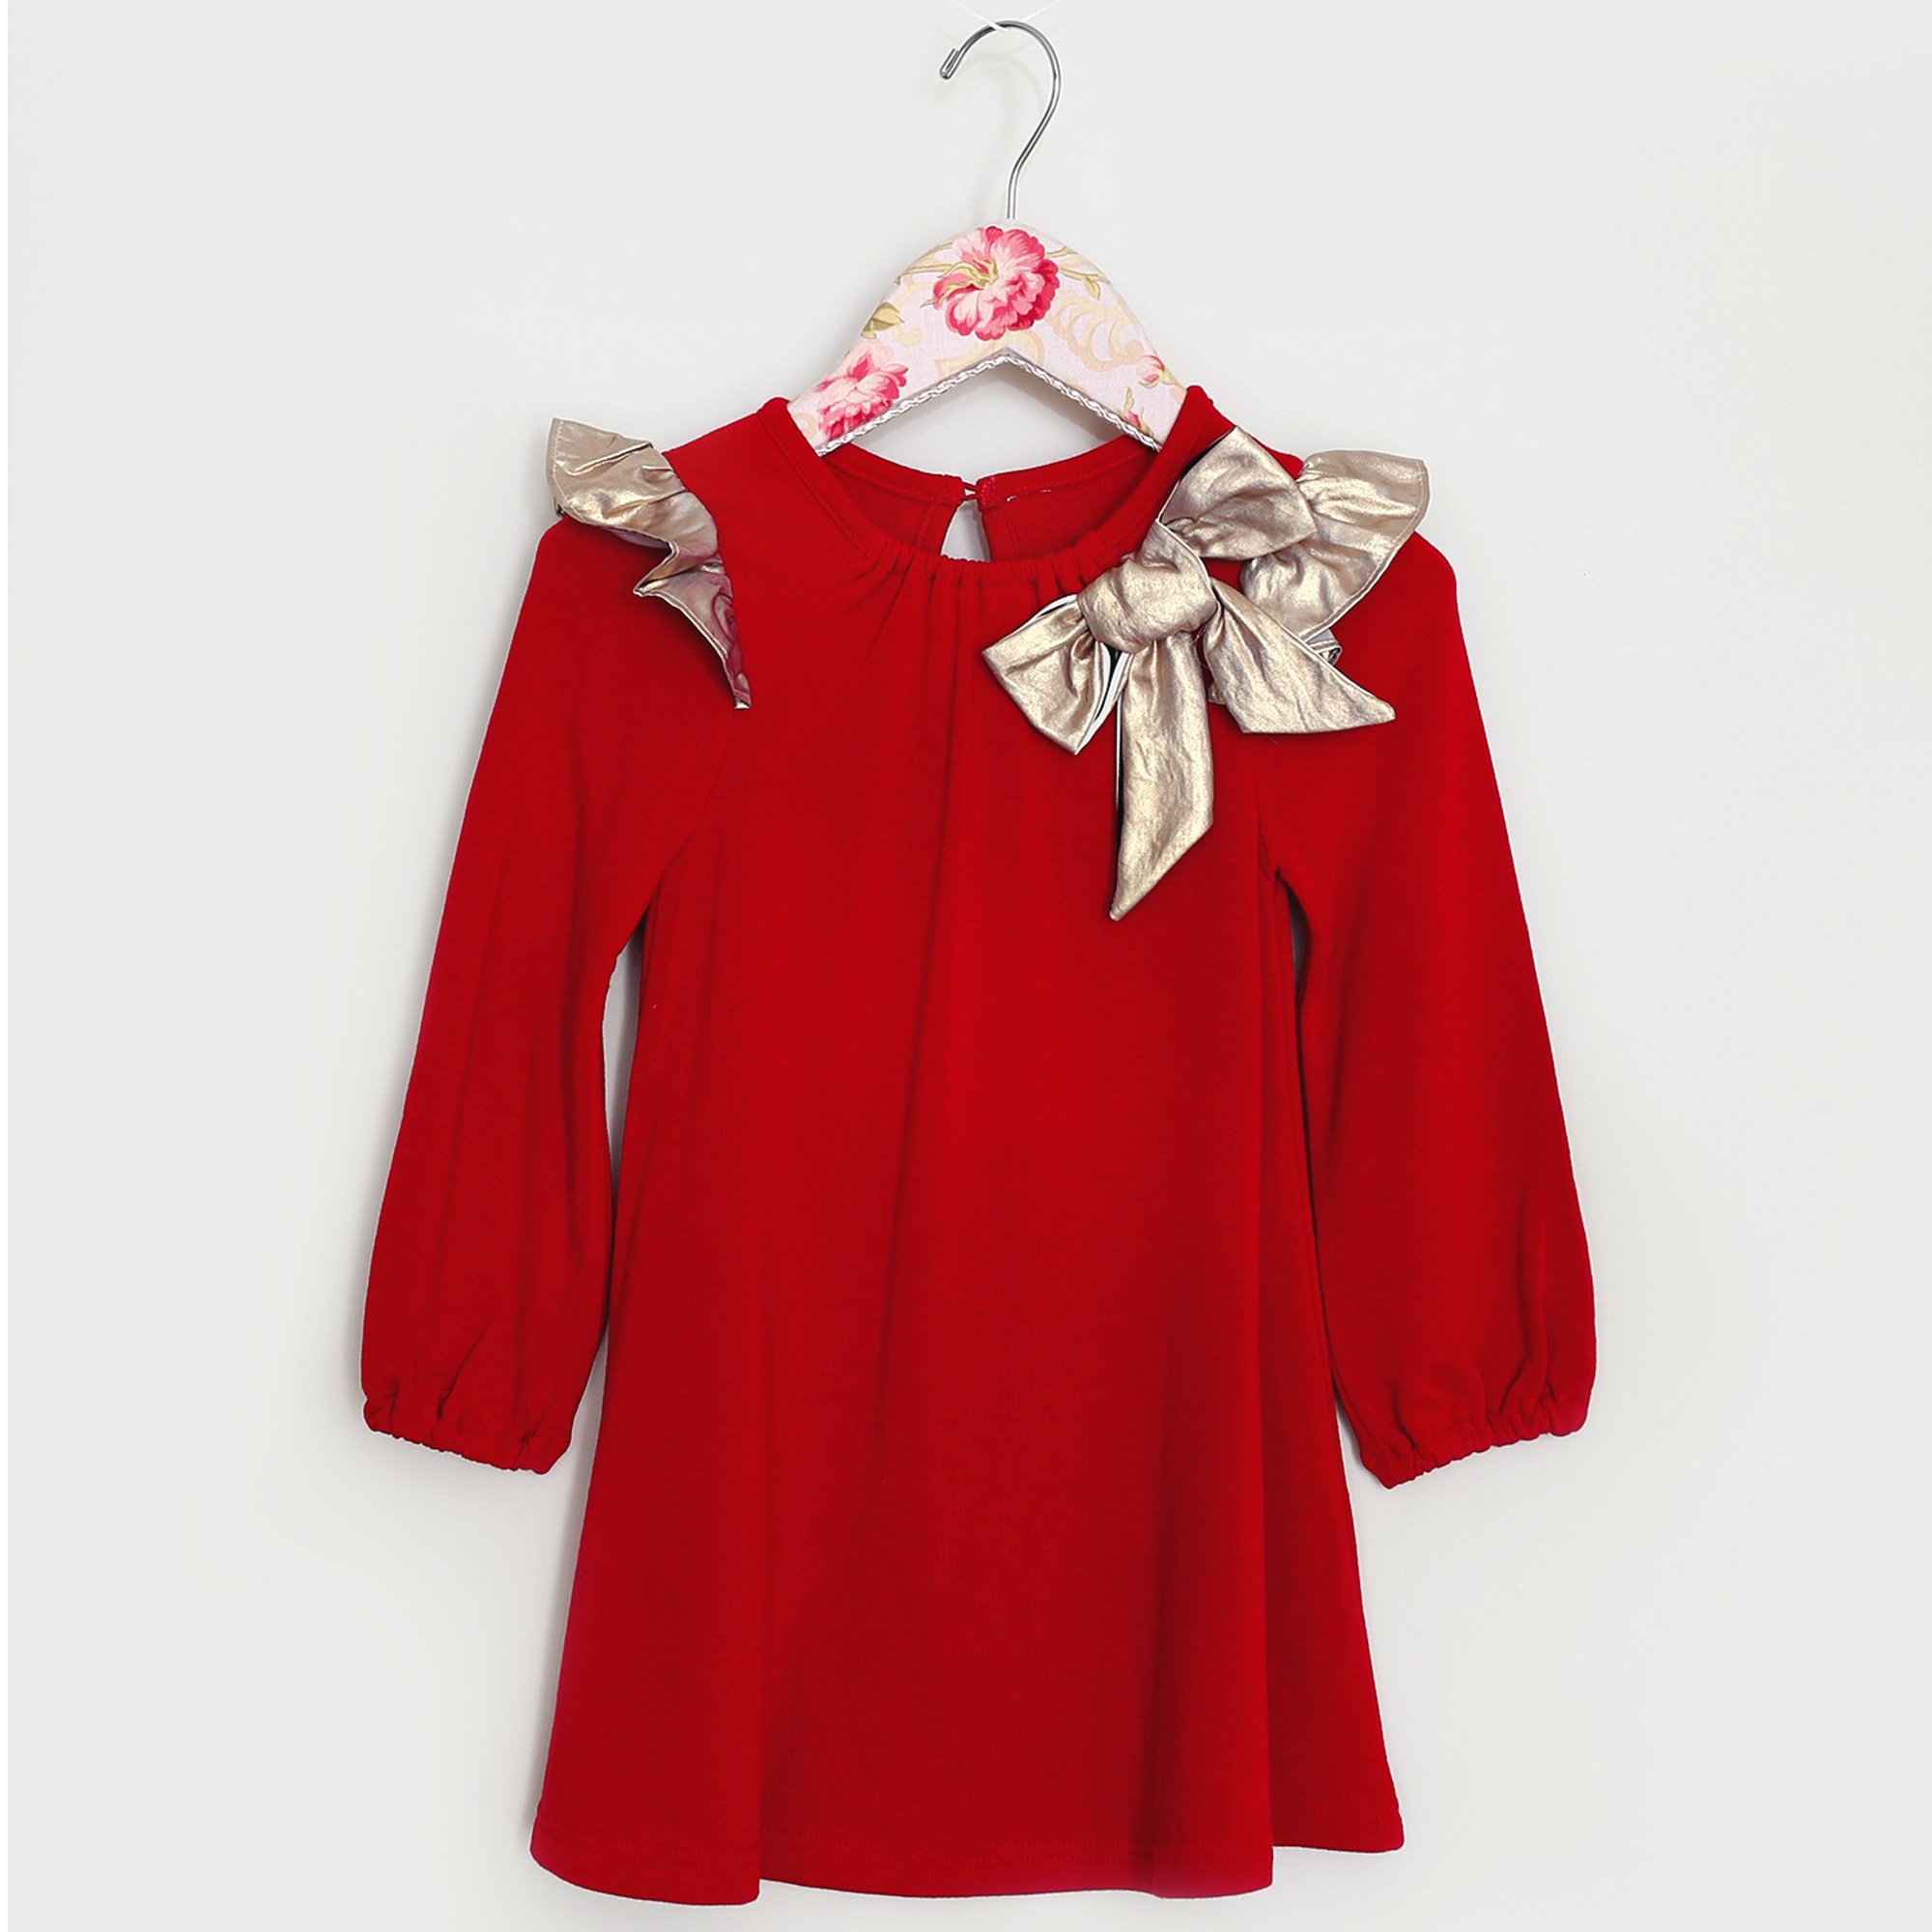 Baby Girl Christmas Dress | Baby Bling Street Baby Fashion Boutique